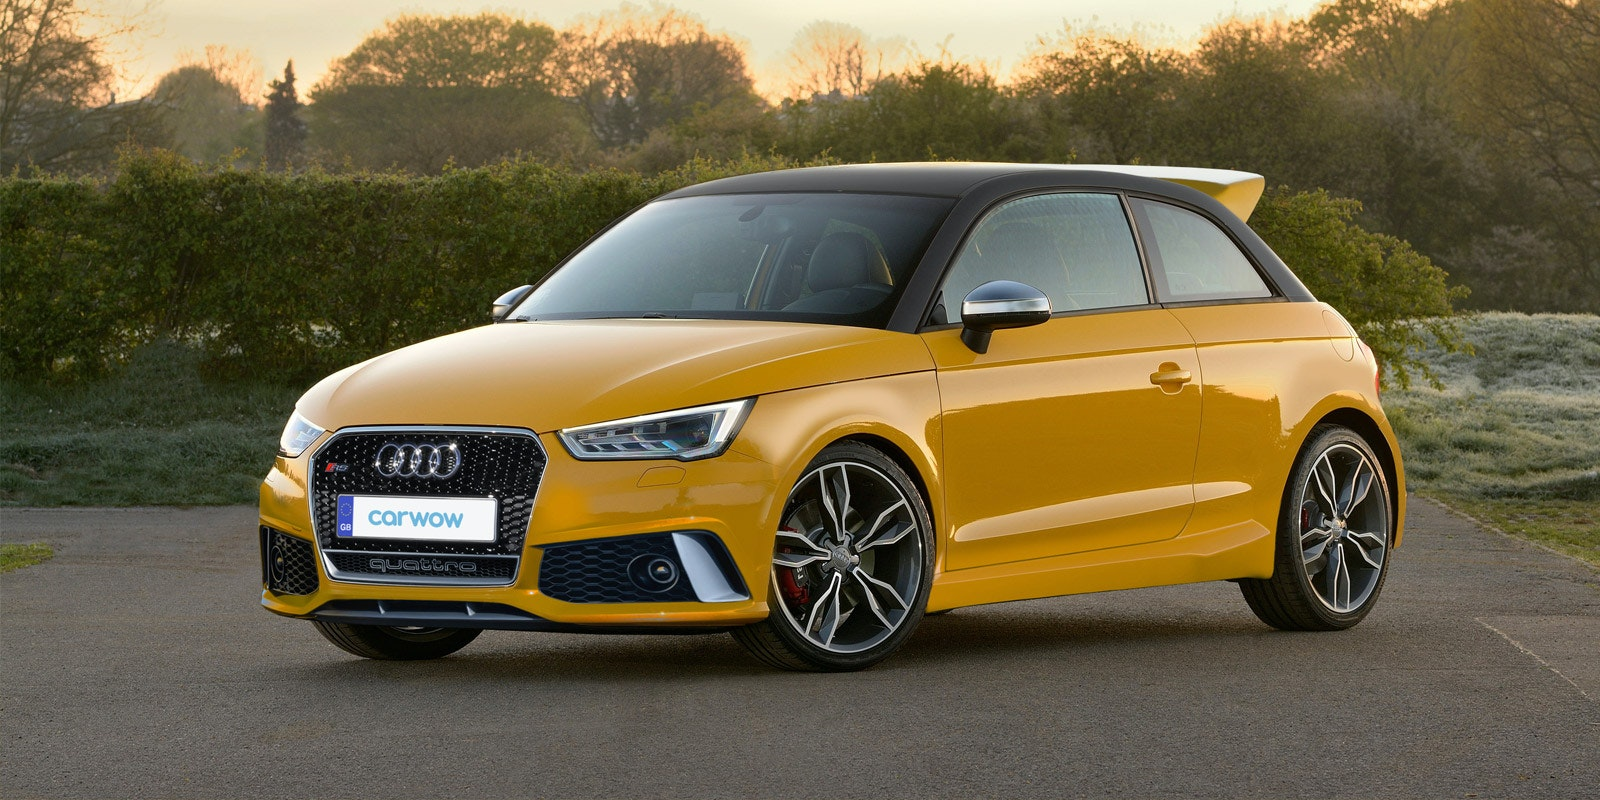 2018 Audi Rs1 Price Specs And Release Date Carwow